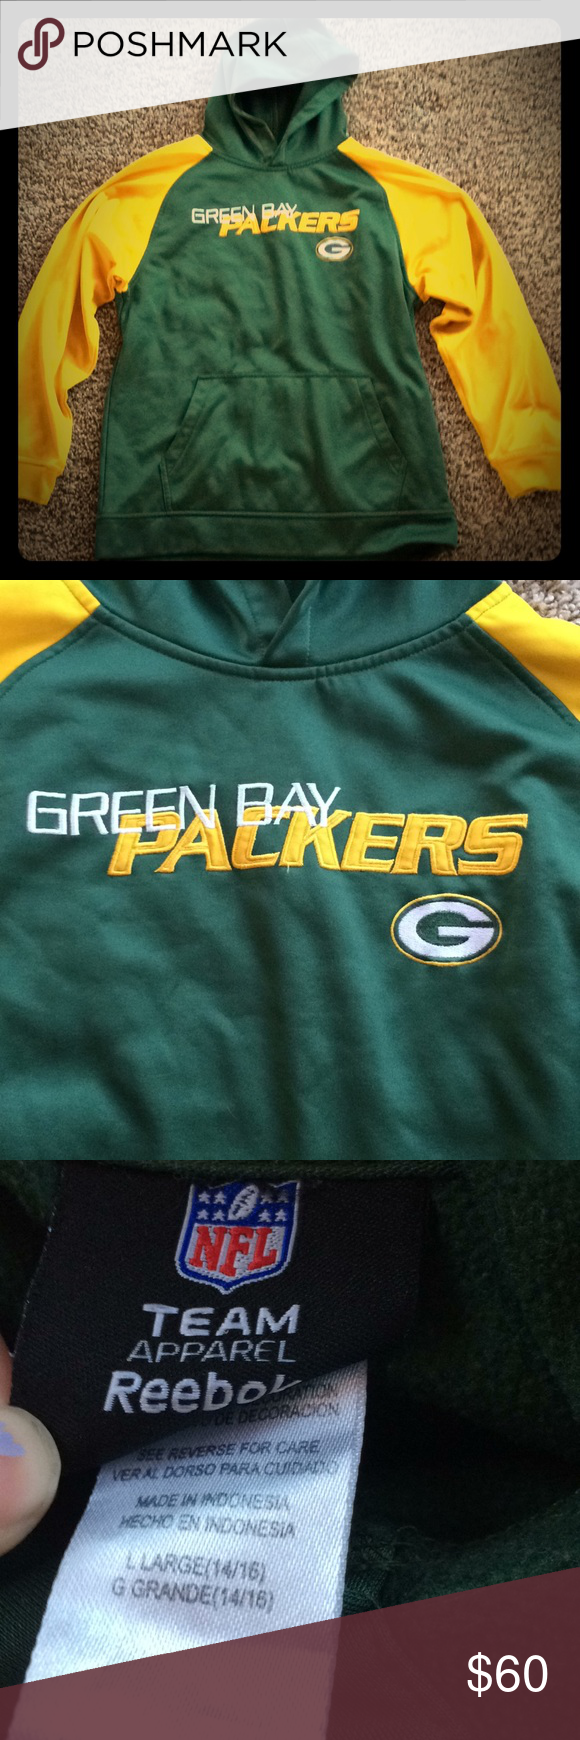 b6d049fa Green Bay packers hoodie Green Bay packers hoodie. Used. Size youth ...